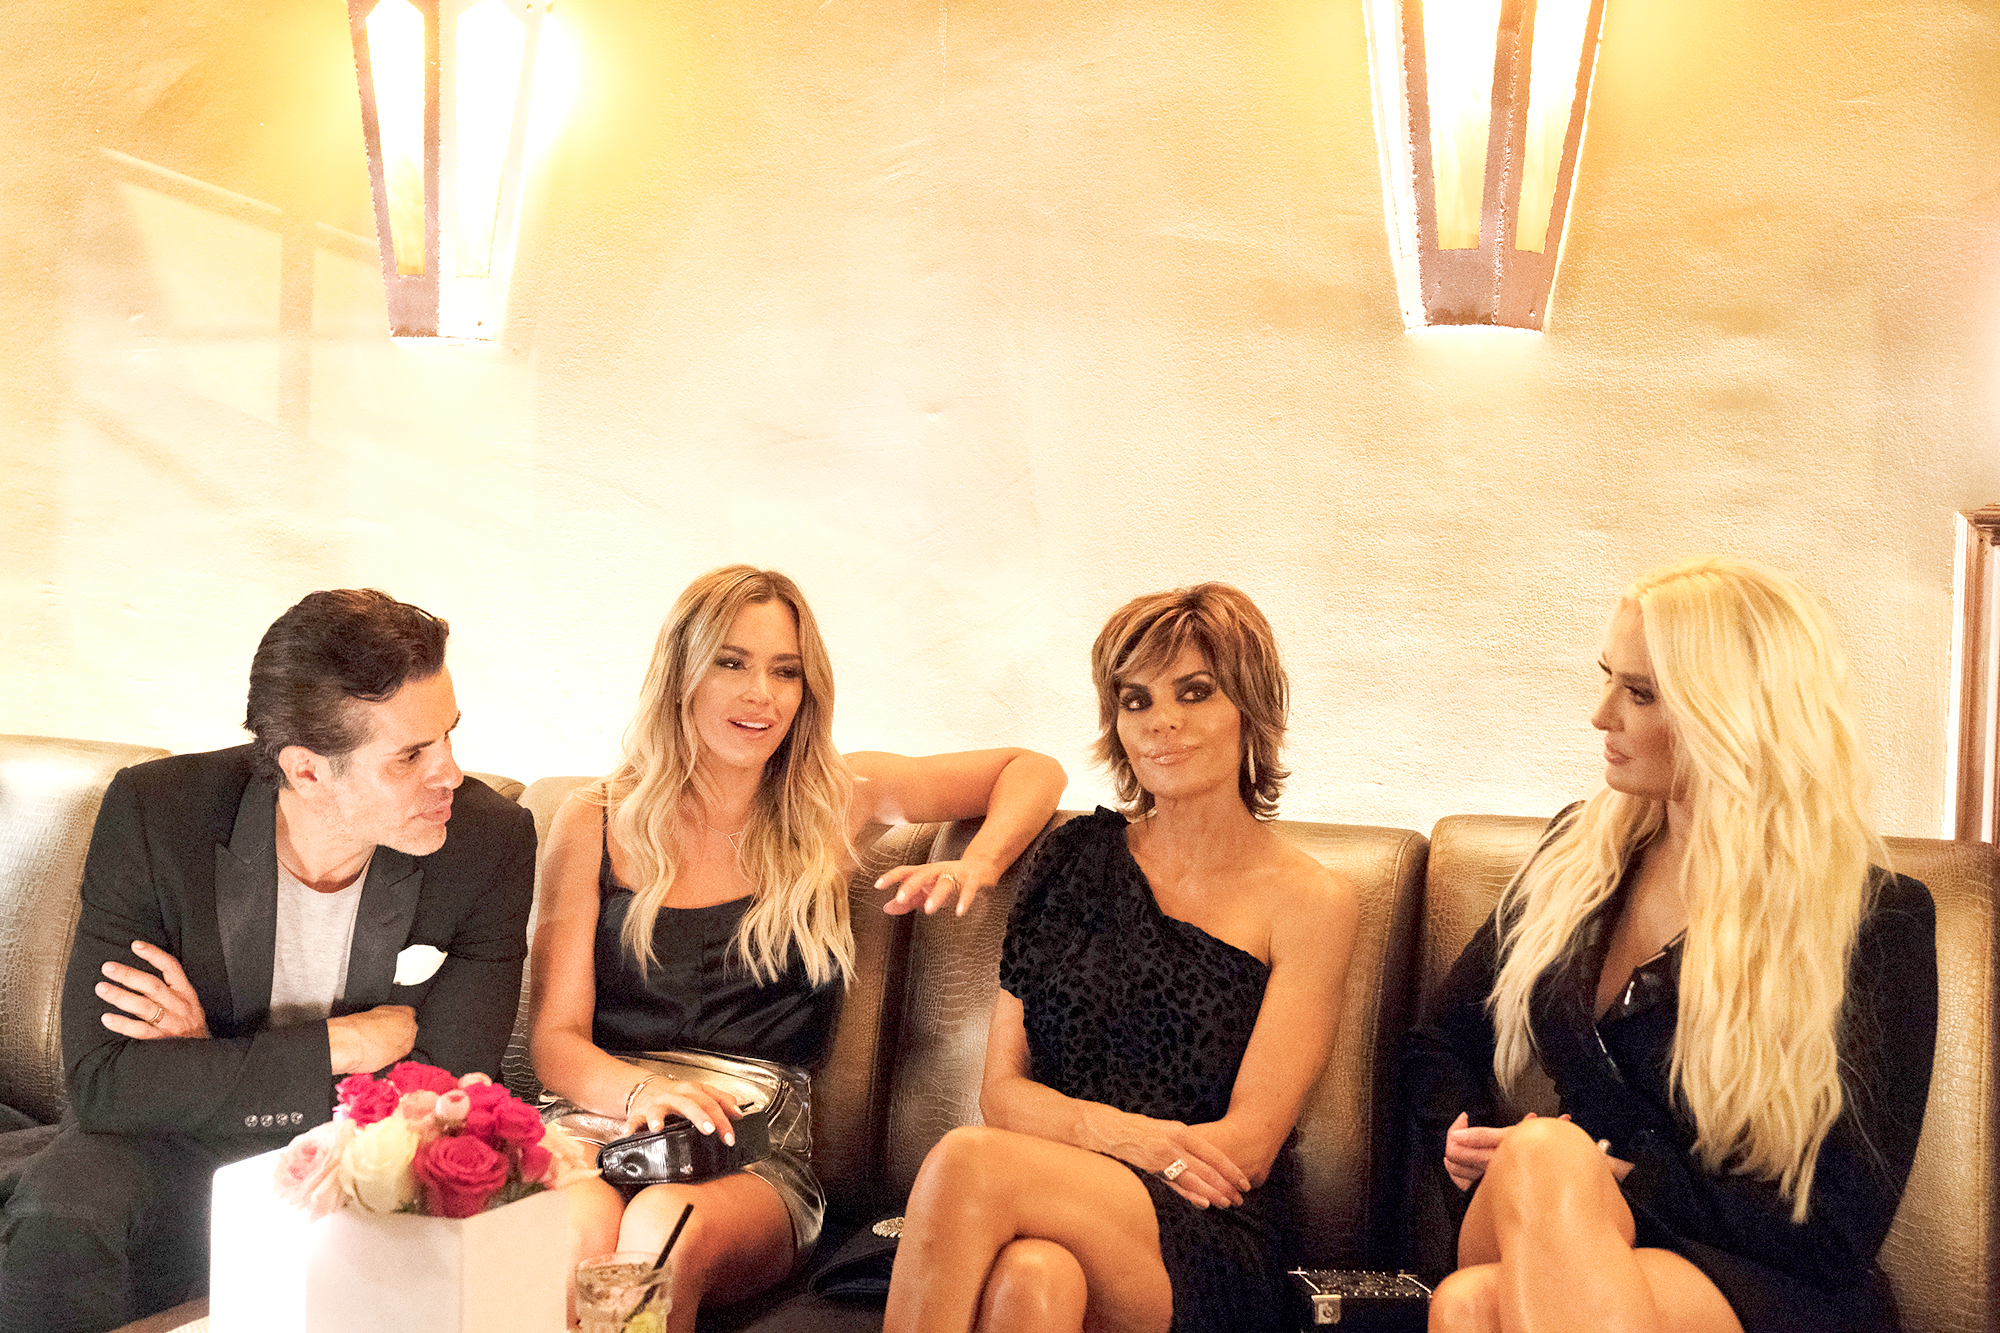 Edwin-Arroyave,-Teddi-Mellencamp-Arroya,-Lisa-Rinna,-Erika-Girardi-Housewives-of-Beverly-Hills